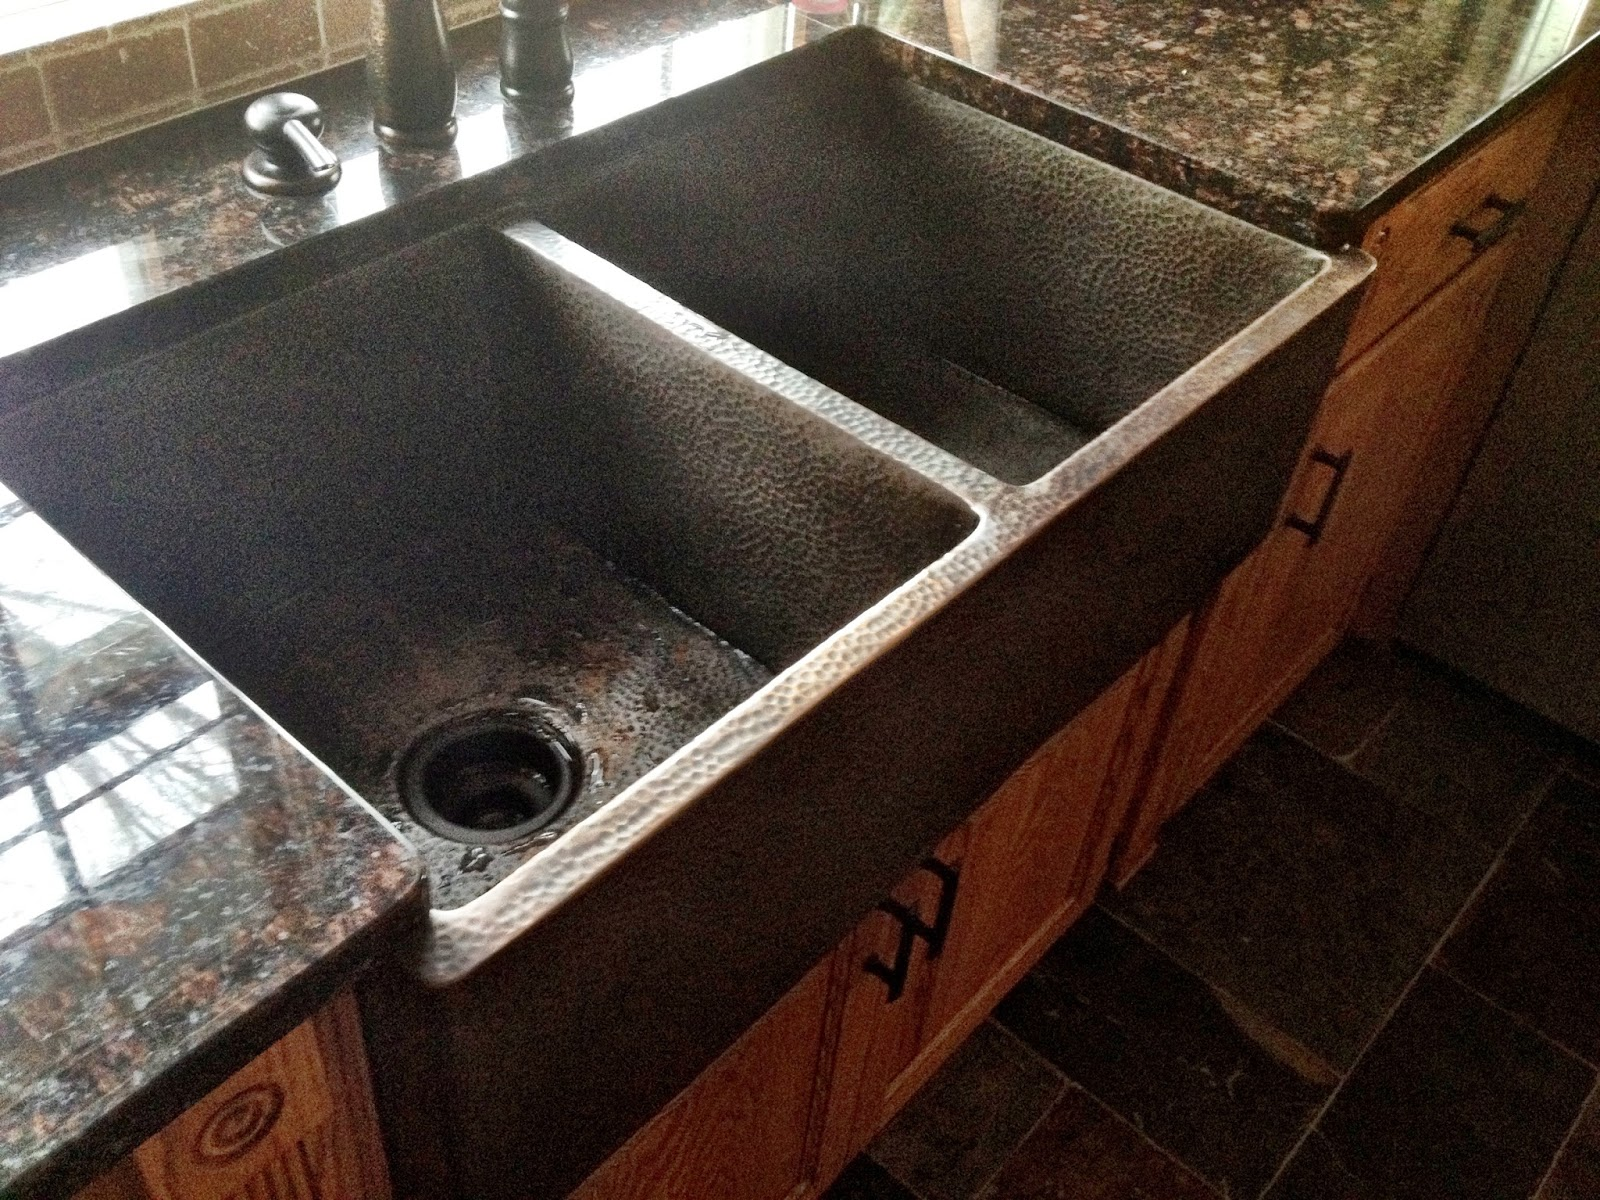 Belle Foret Farmhouse Sink Jacobs Family Blog August 2013